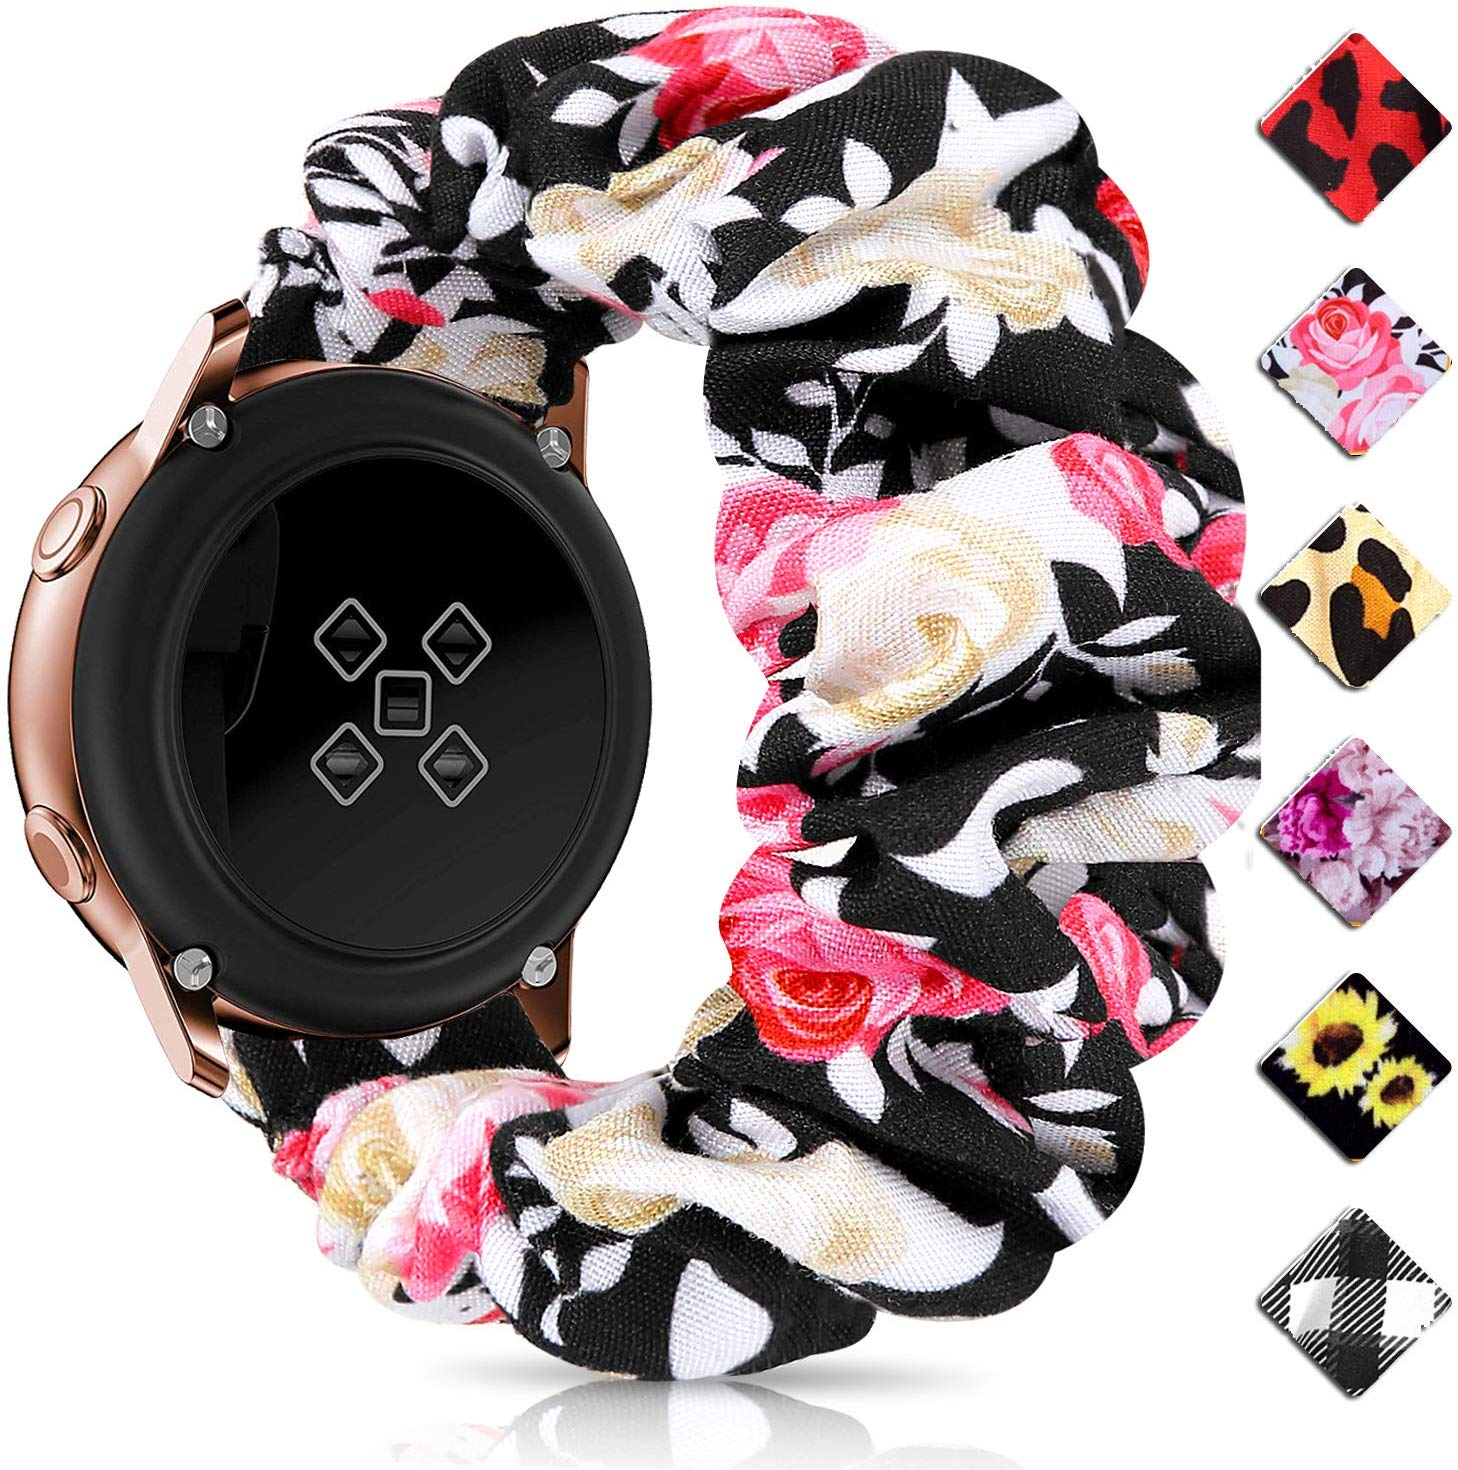 20mm 22mm Quick Release Watch Bands Elastic Scrunchie Watch Band Women For Samsung Galaxy Watch Gear S3 S2 42mm 46mm